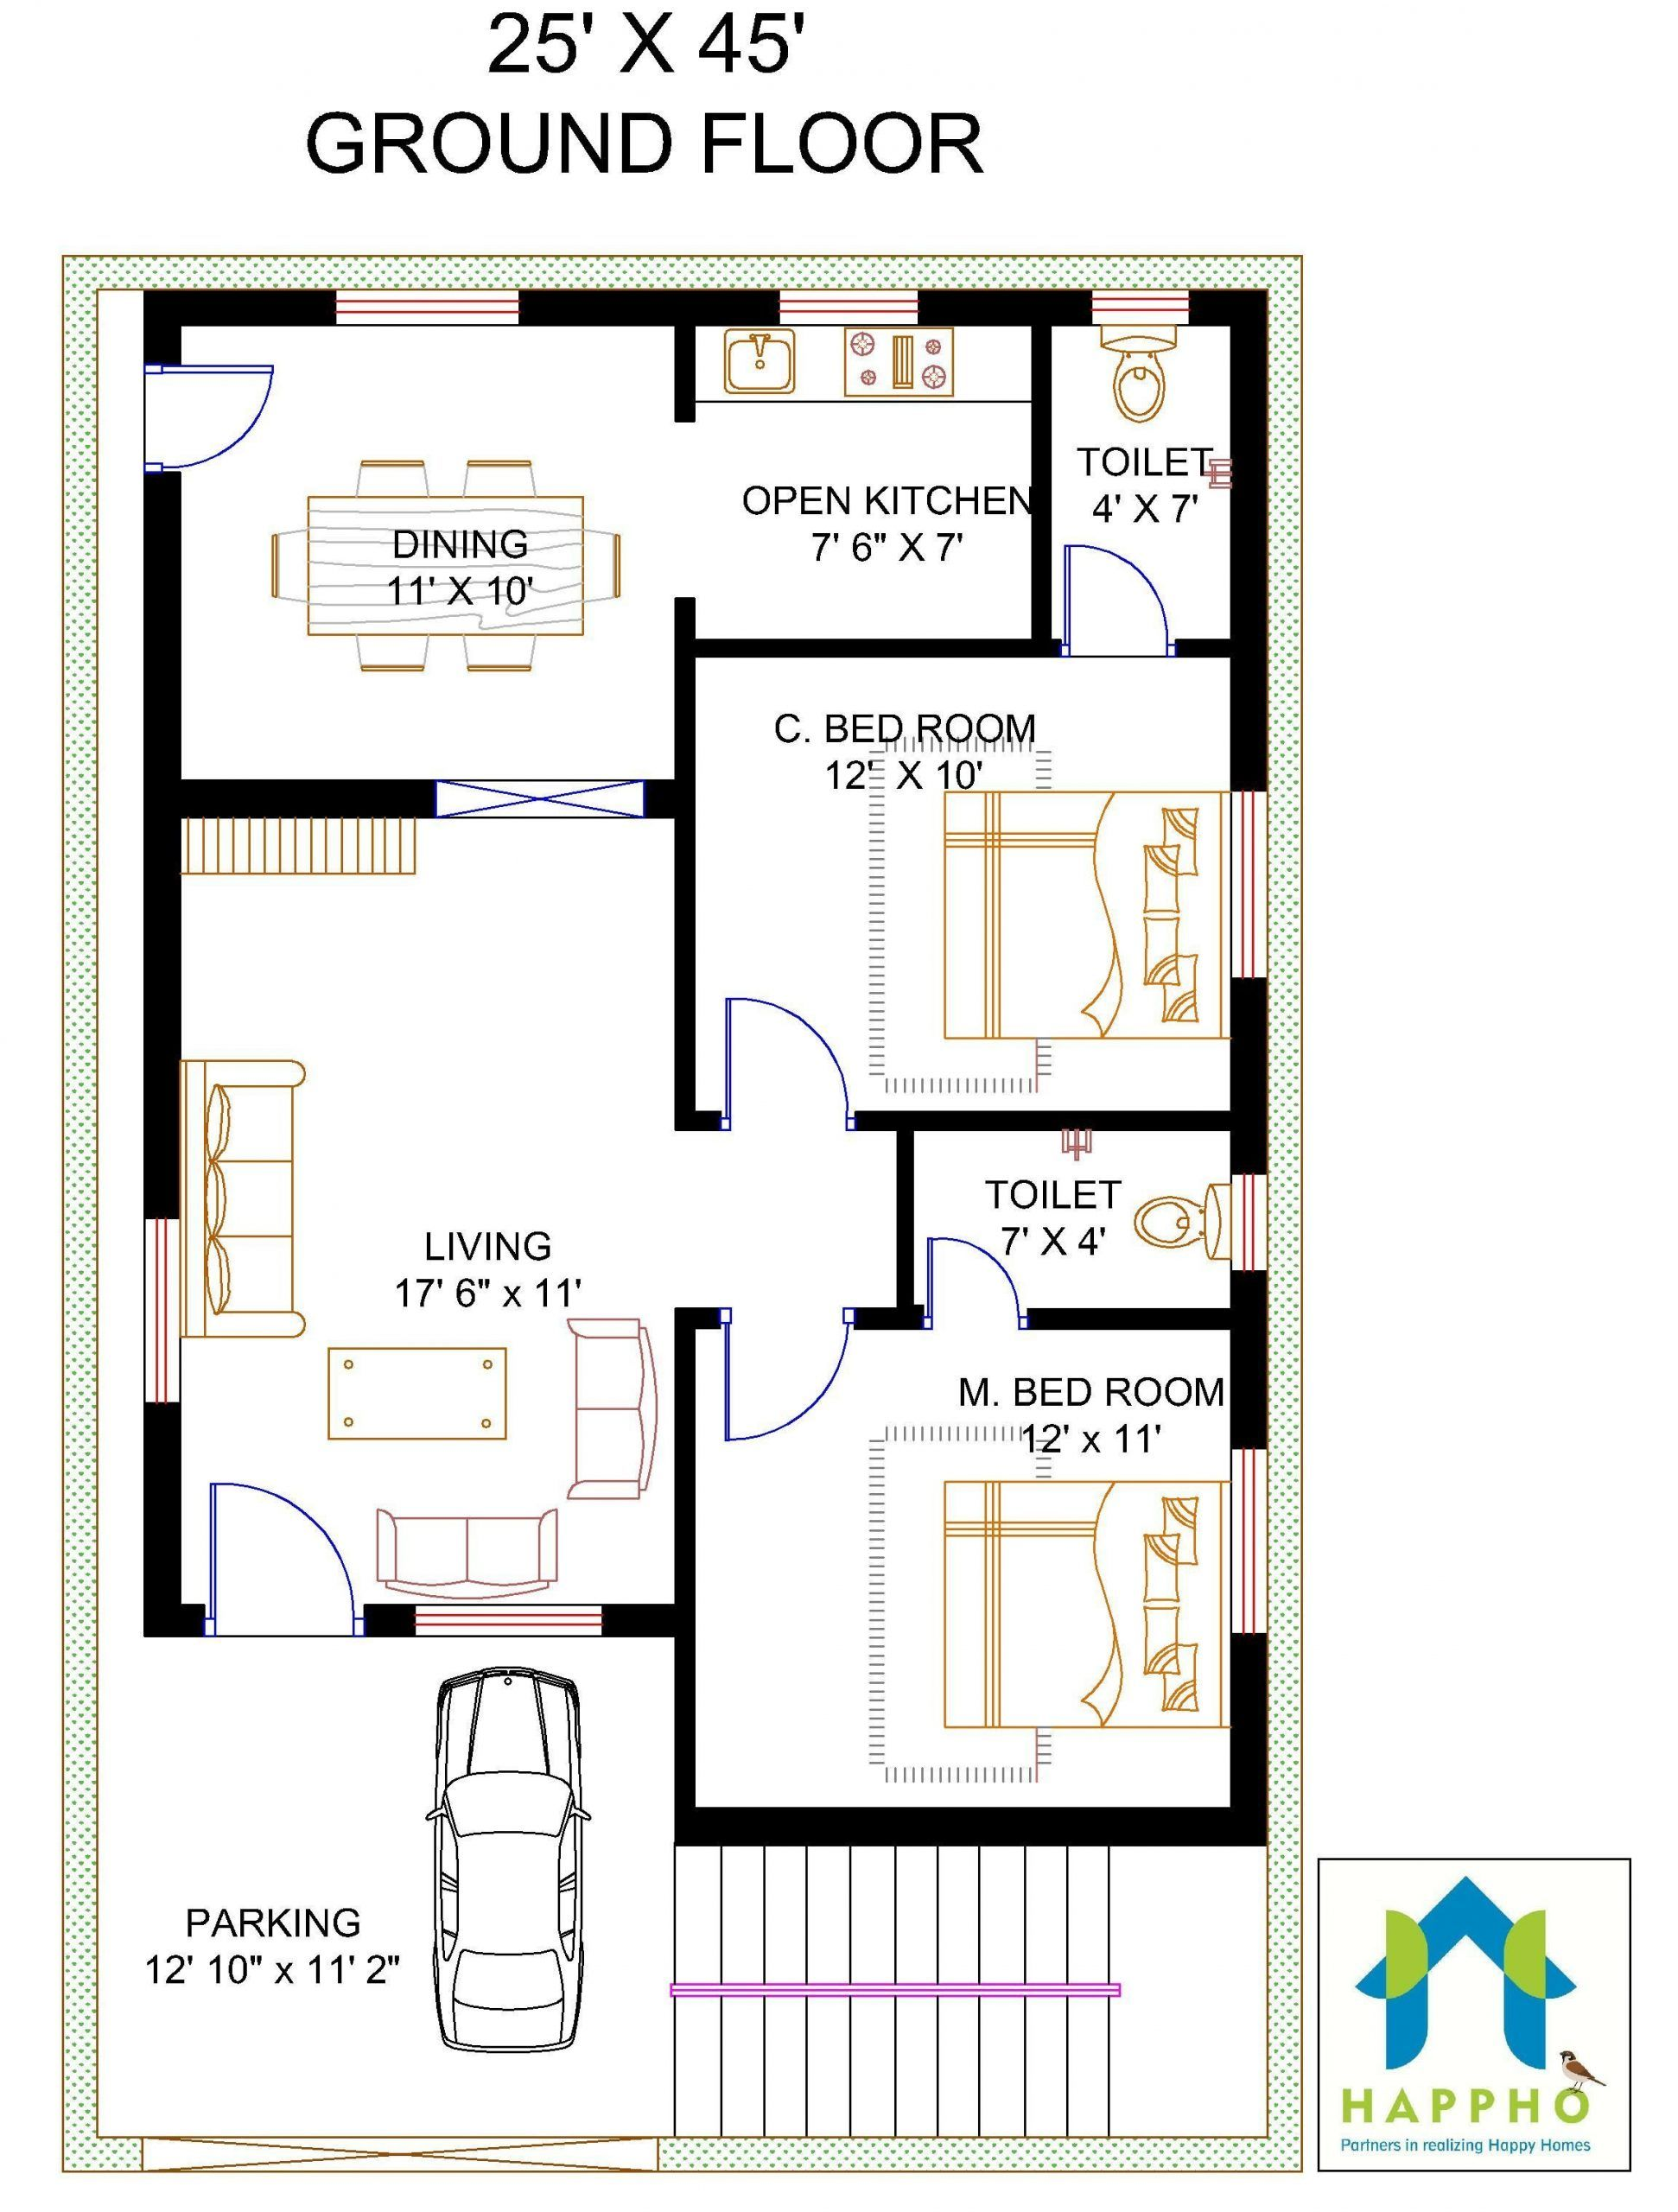 Two Bedroom House Plan Designs 2021 Open Concept House Plans Unique Floor Plans Bedroom House Plans